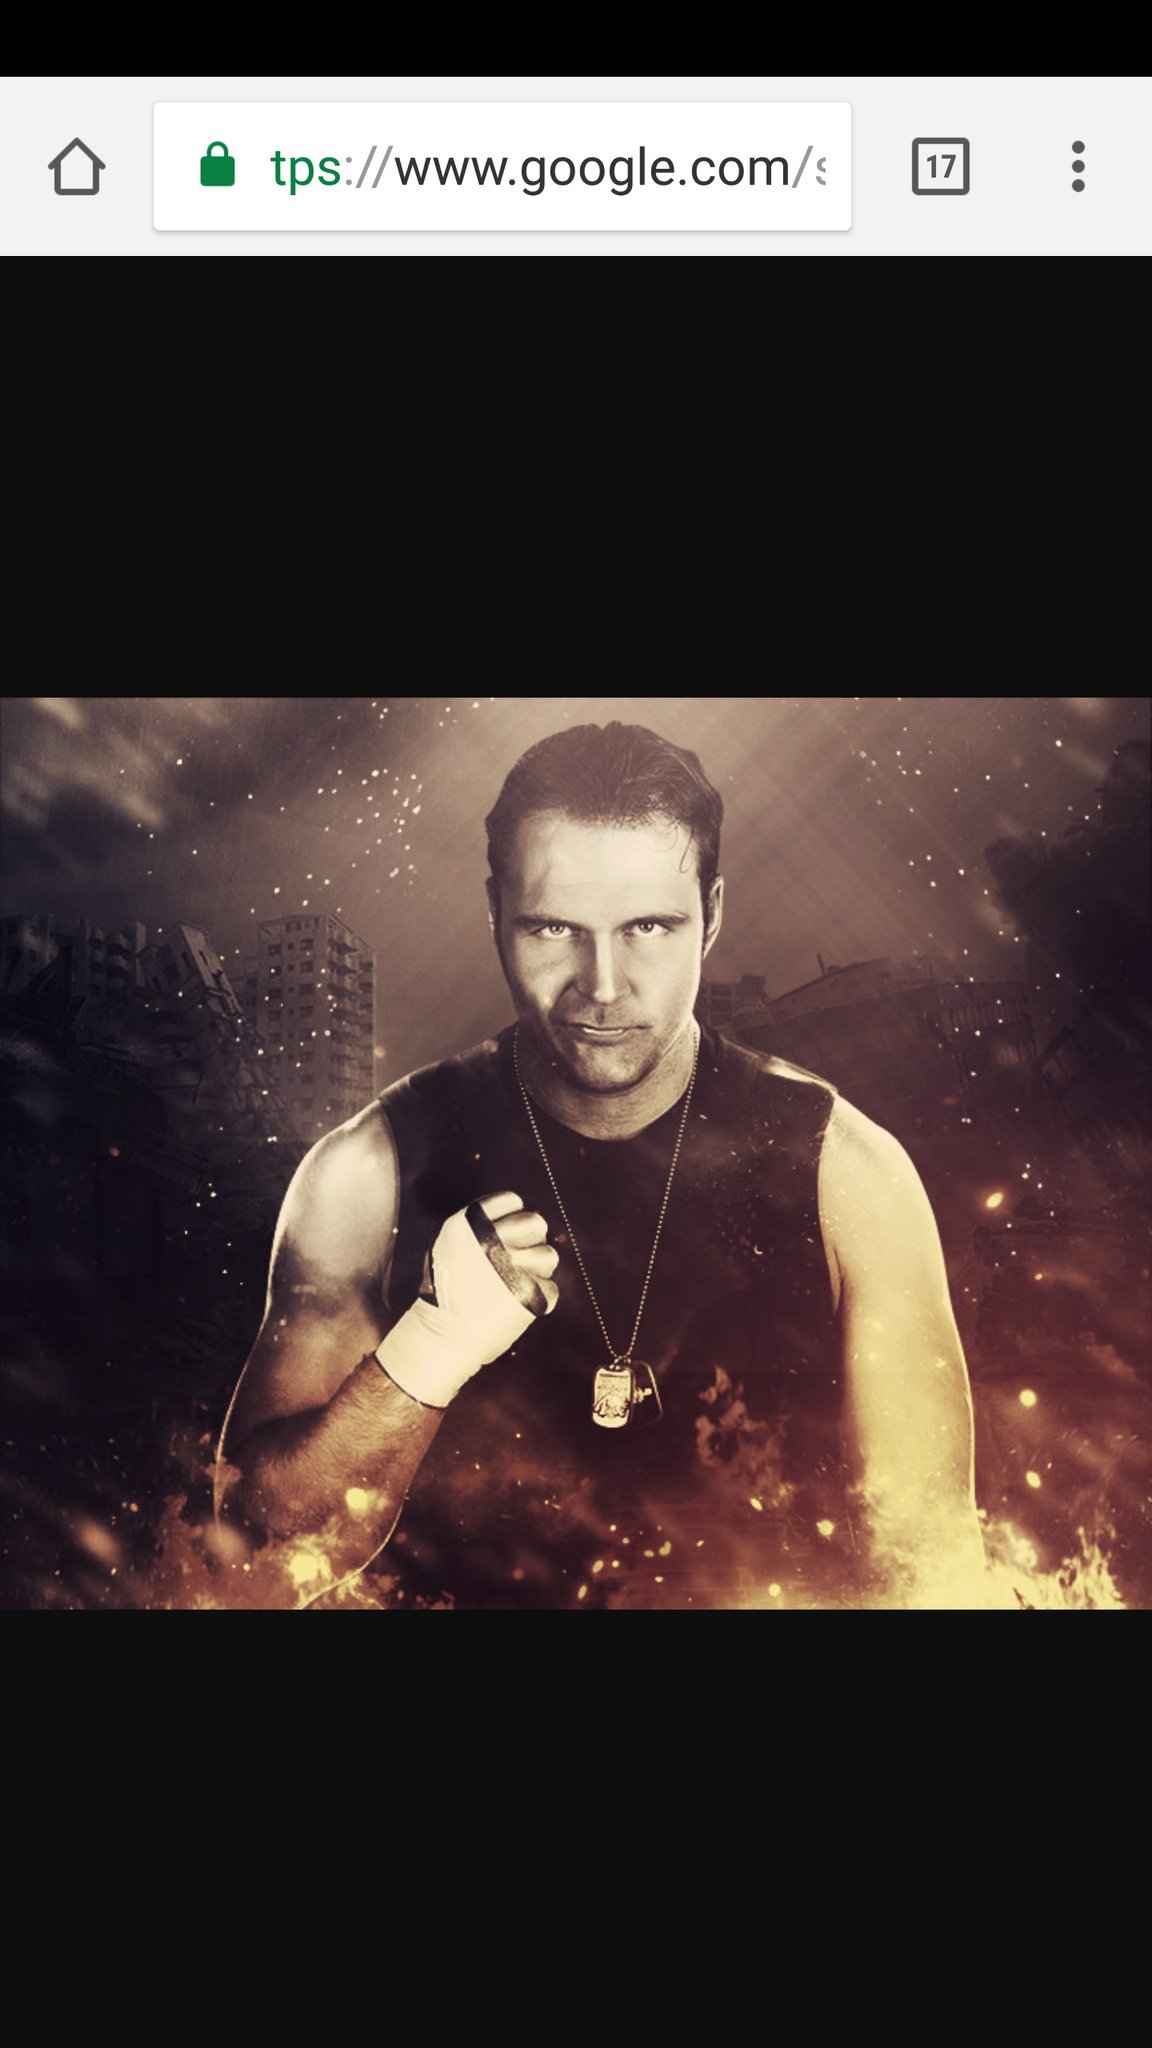 Happy birthday                                              to my favorite wrestler dean Ambrose